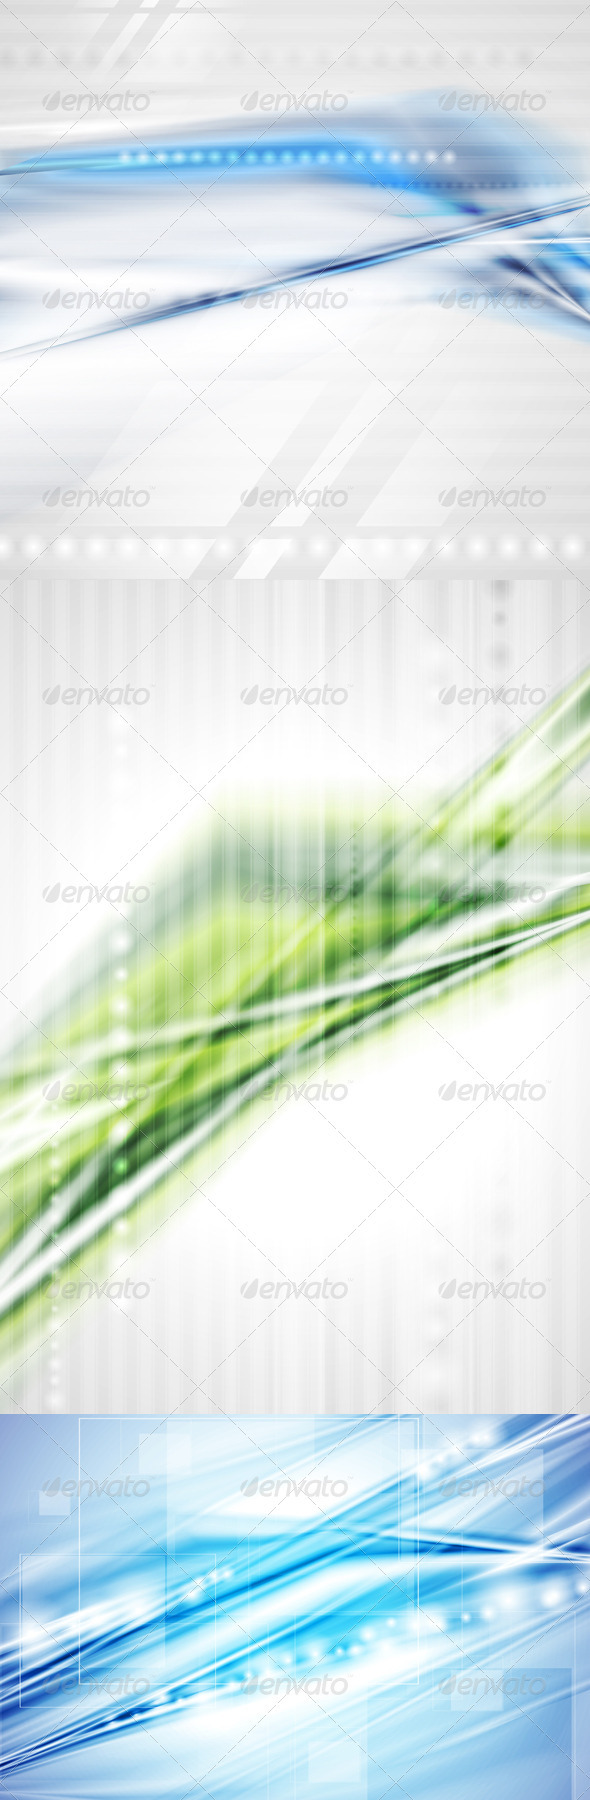 GraphicRiver Abstract Modern Technical Backgrounds 3411939